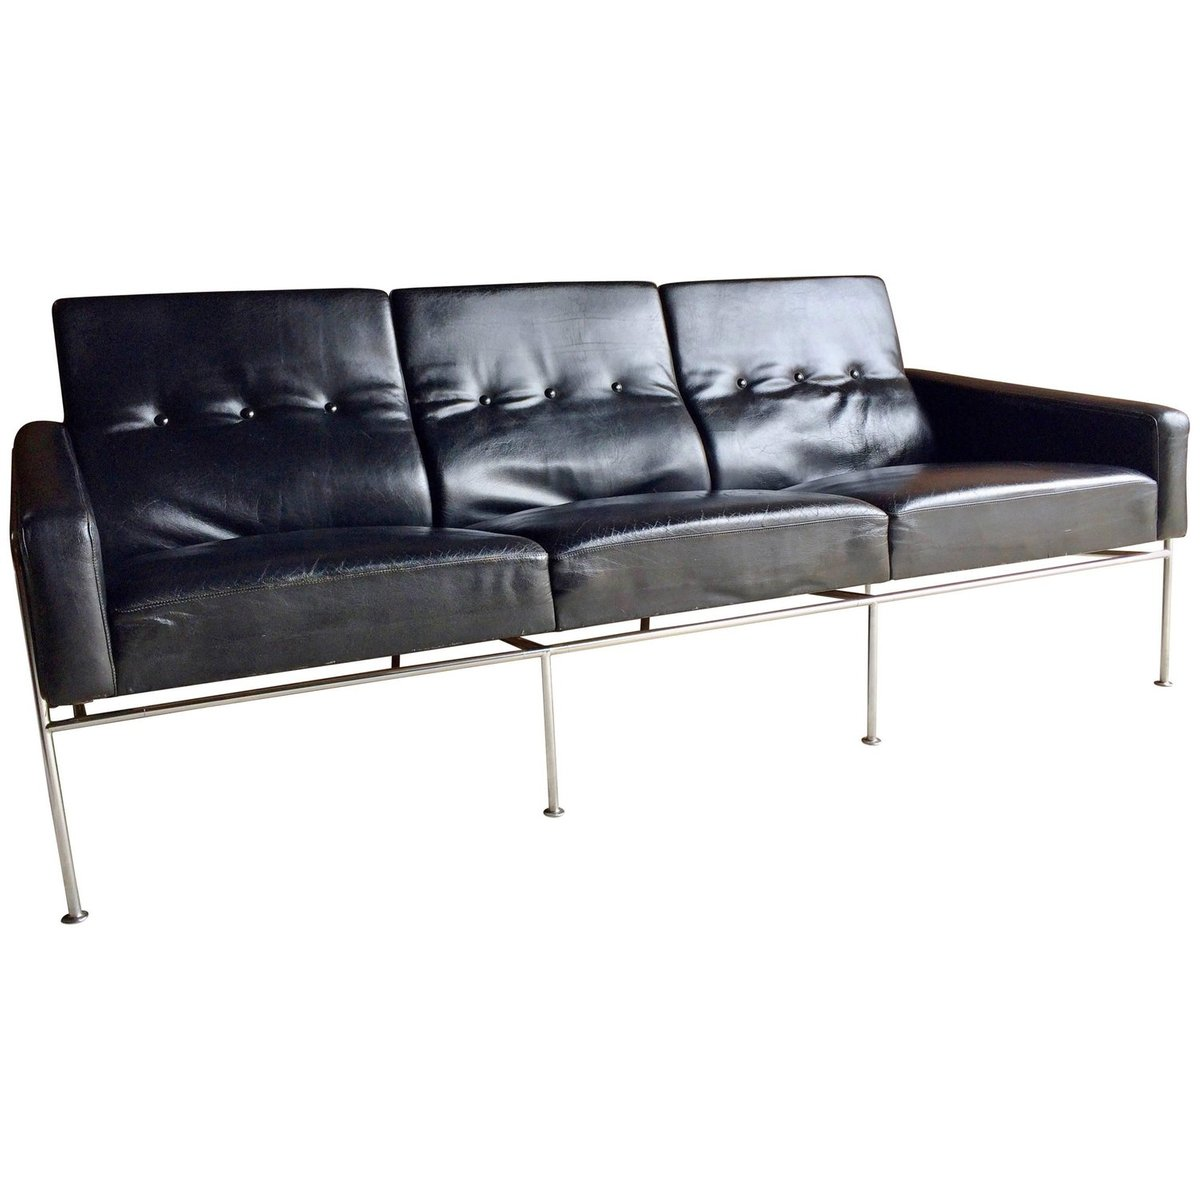 3300 three seater sofa in black leather by arne jacobsen for fritz hansen 1960s for sale at pamono. Black Bedroom Furniture Sets. Home Design Ideas